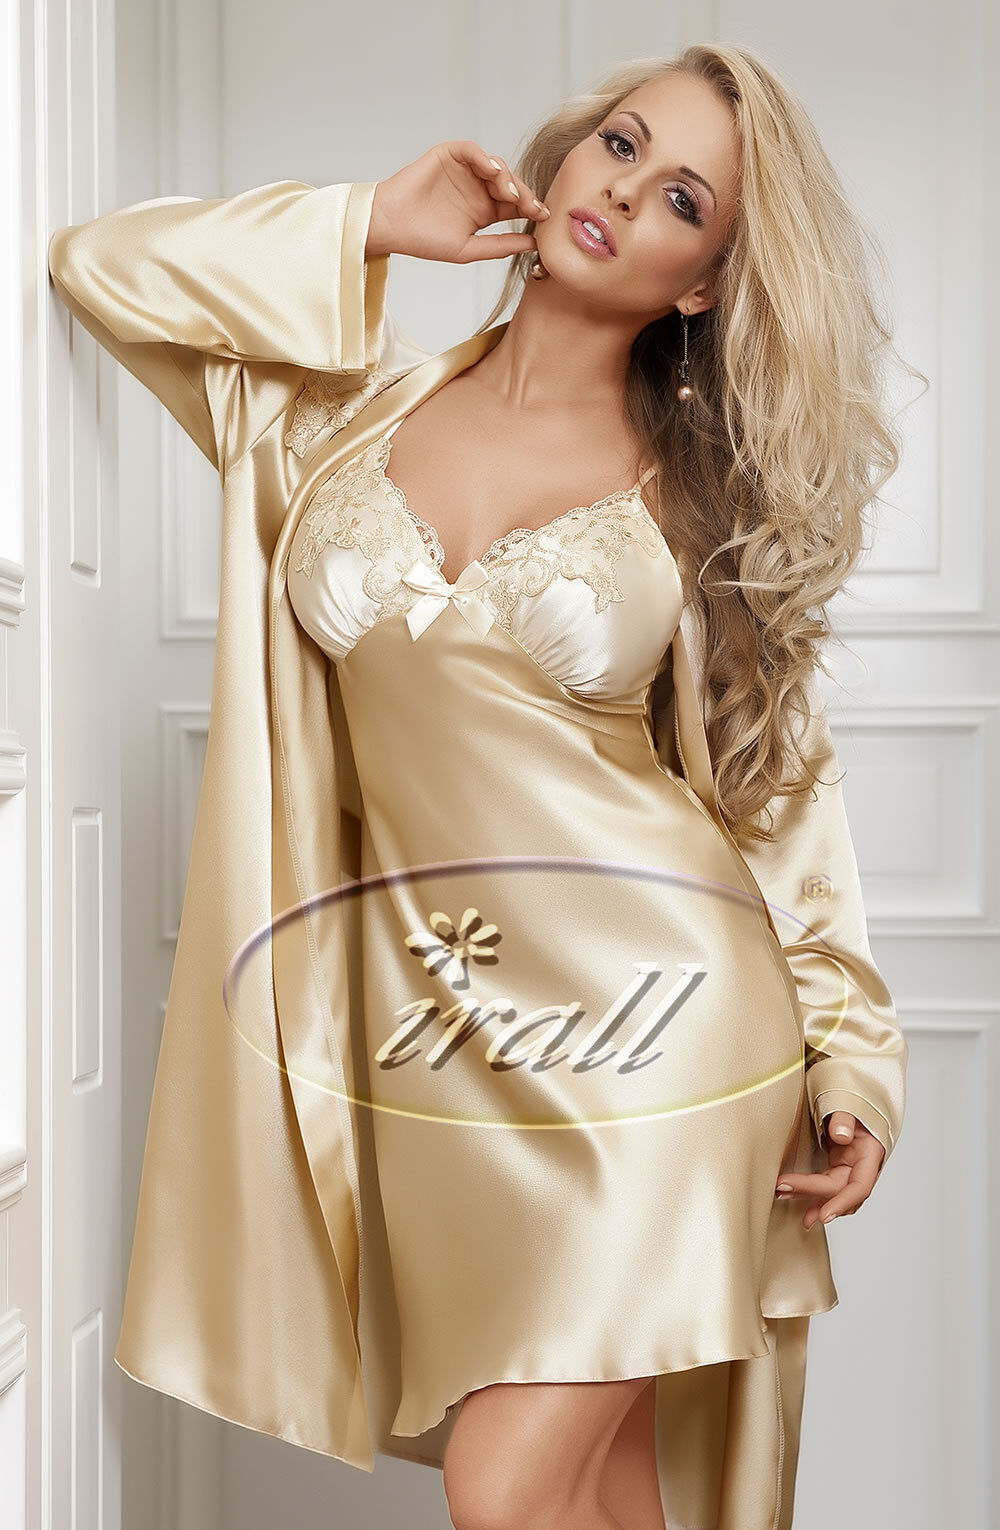 Irall Parisa nightdress gold Beige nightie satin Sizes 8 to 18 sexy nightwear